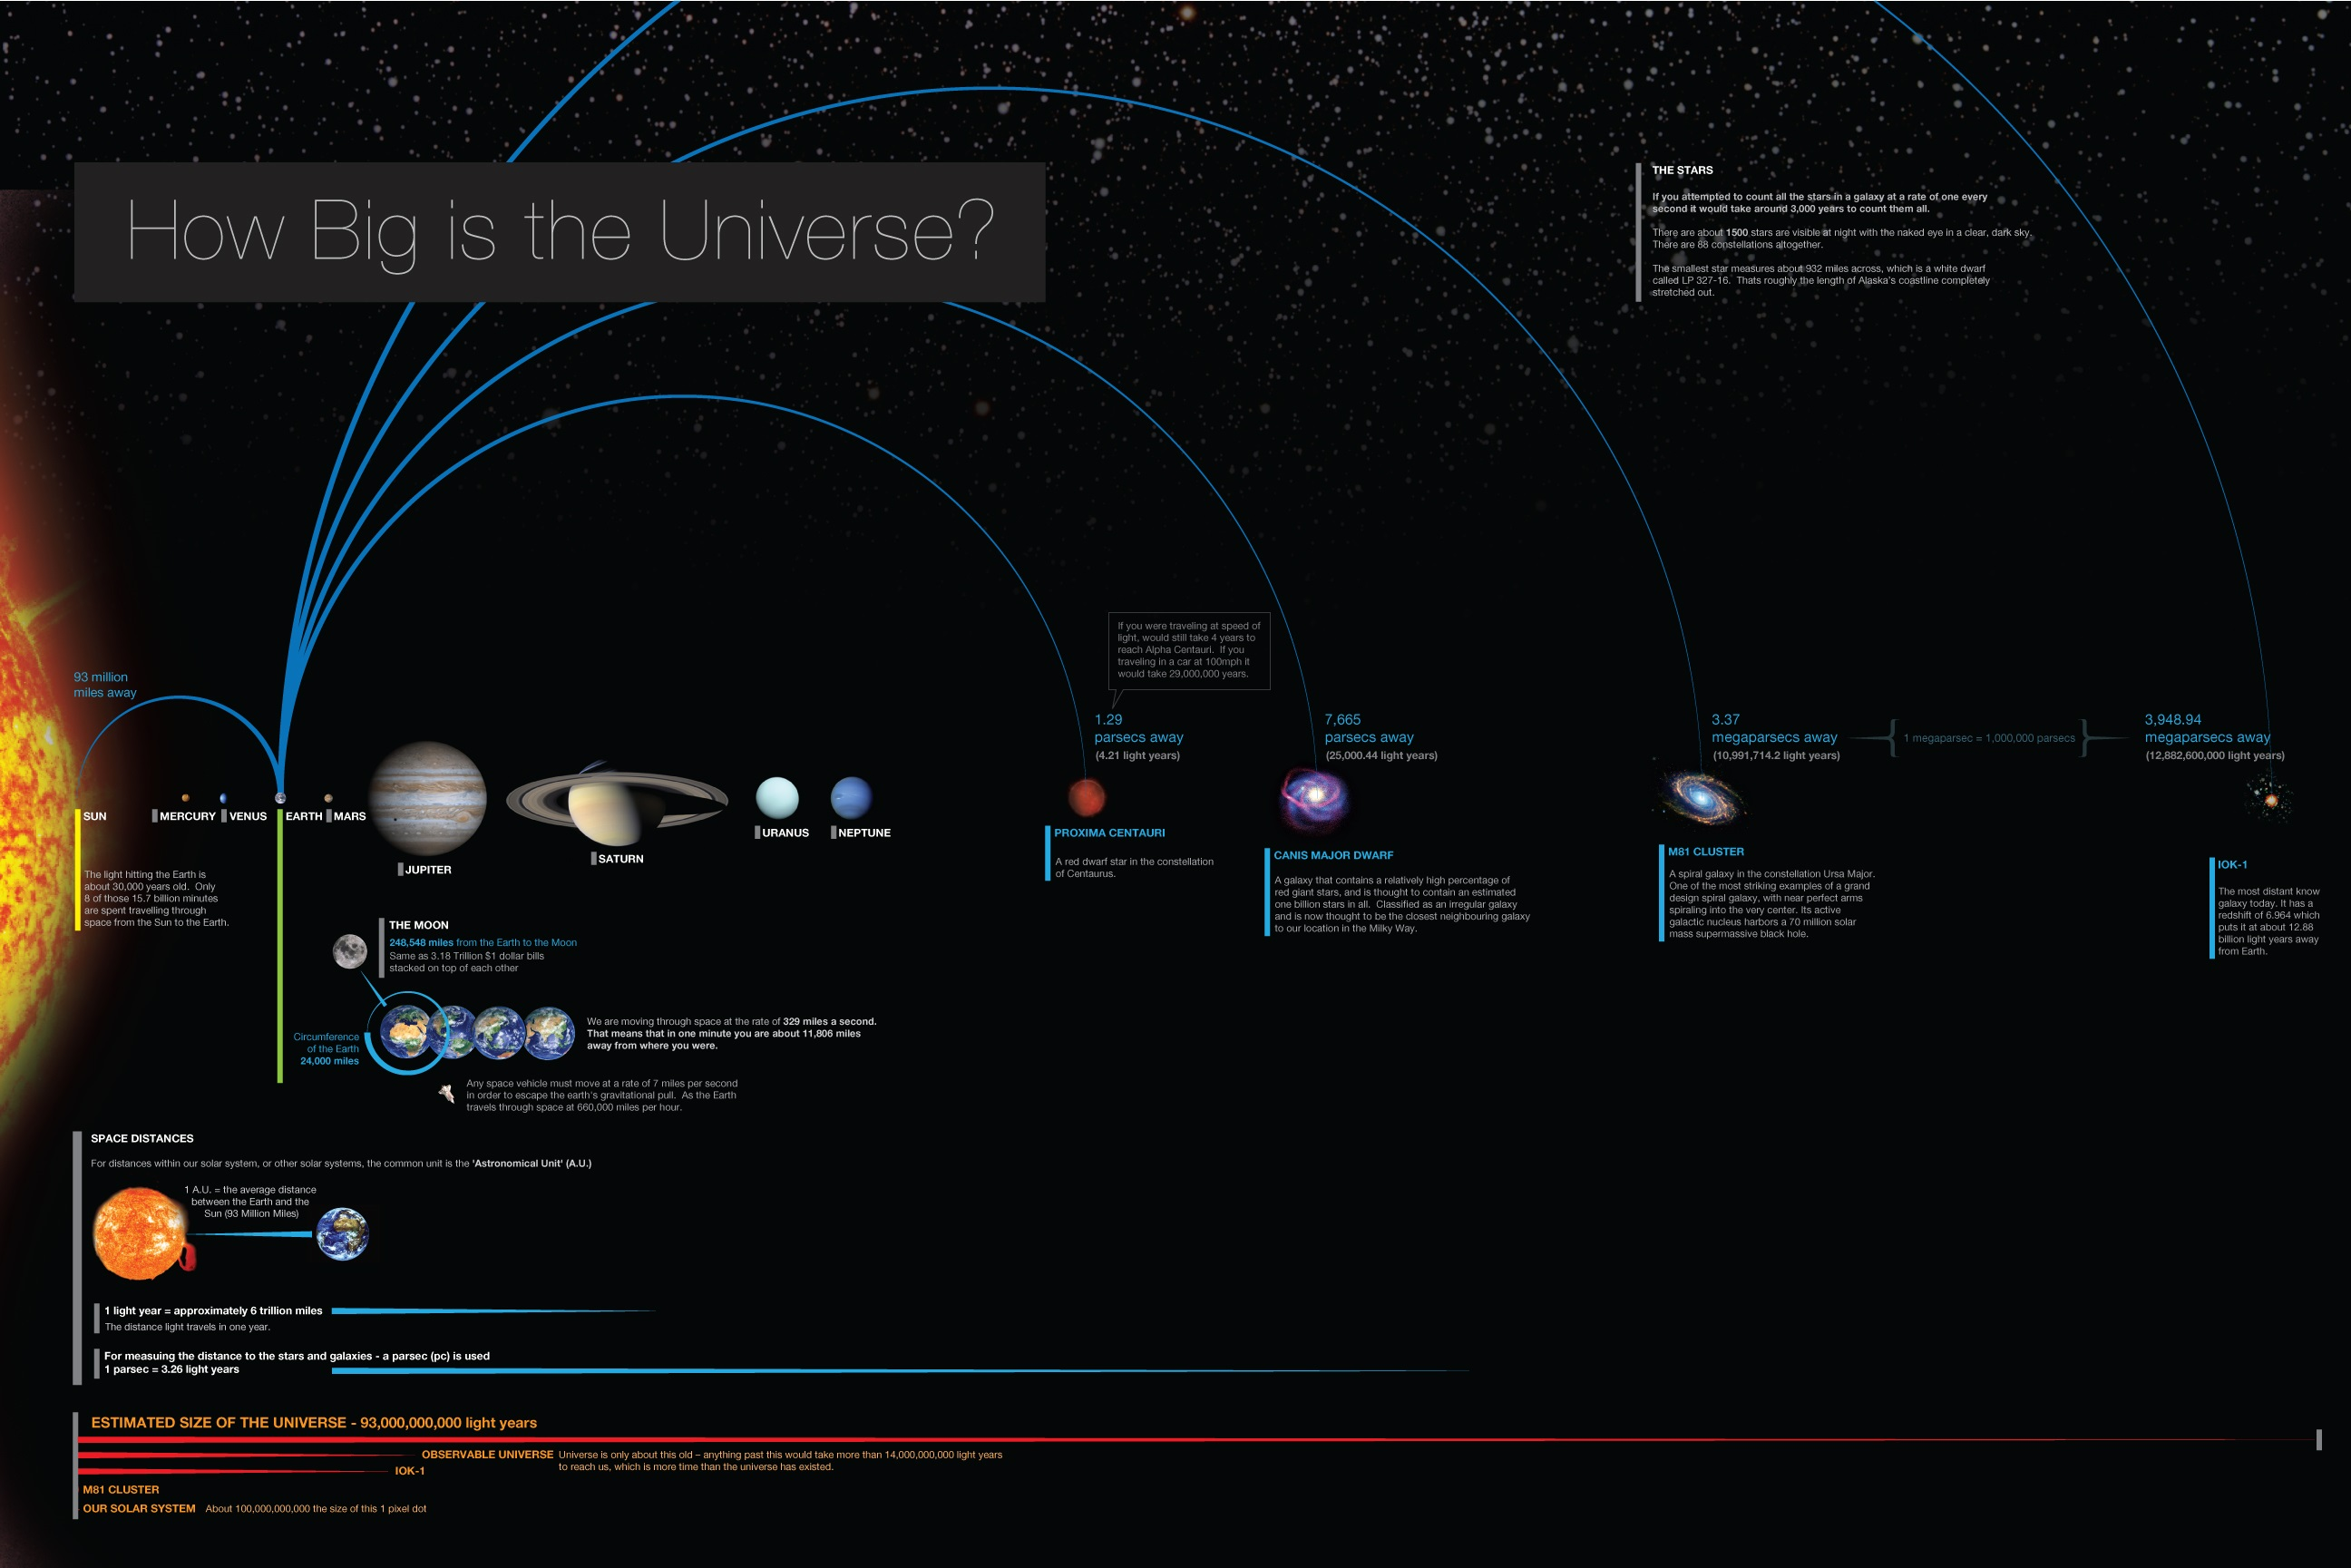 universe-size-analysis